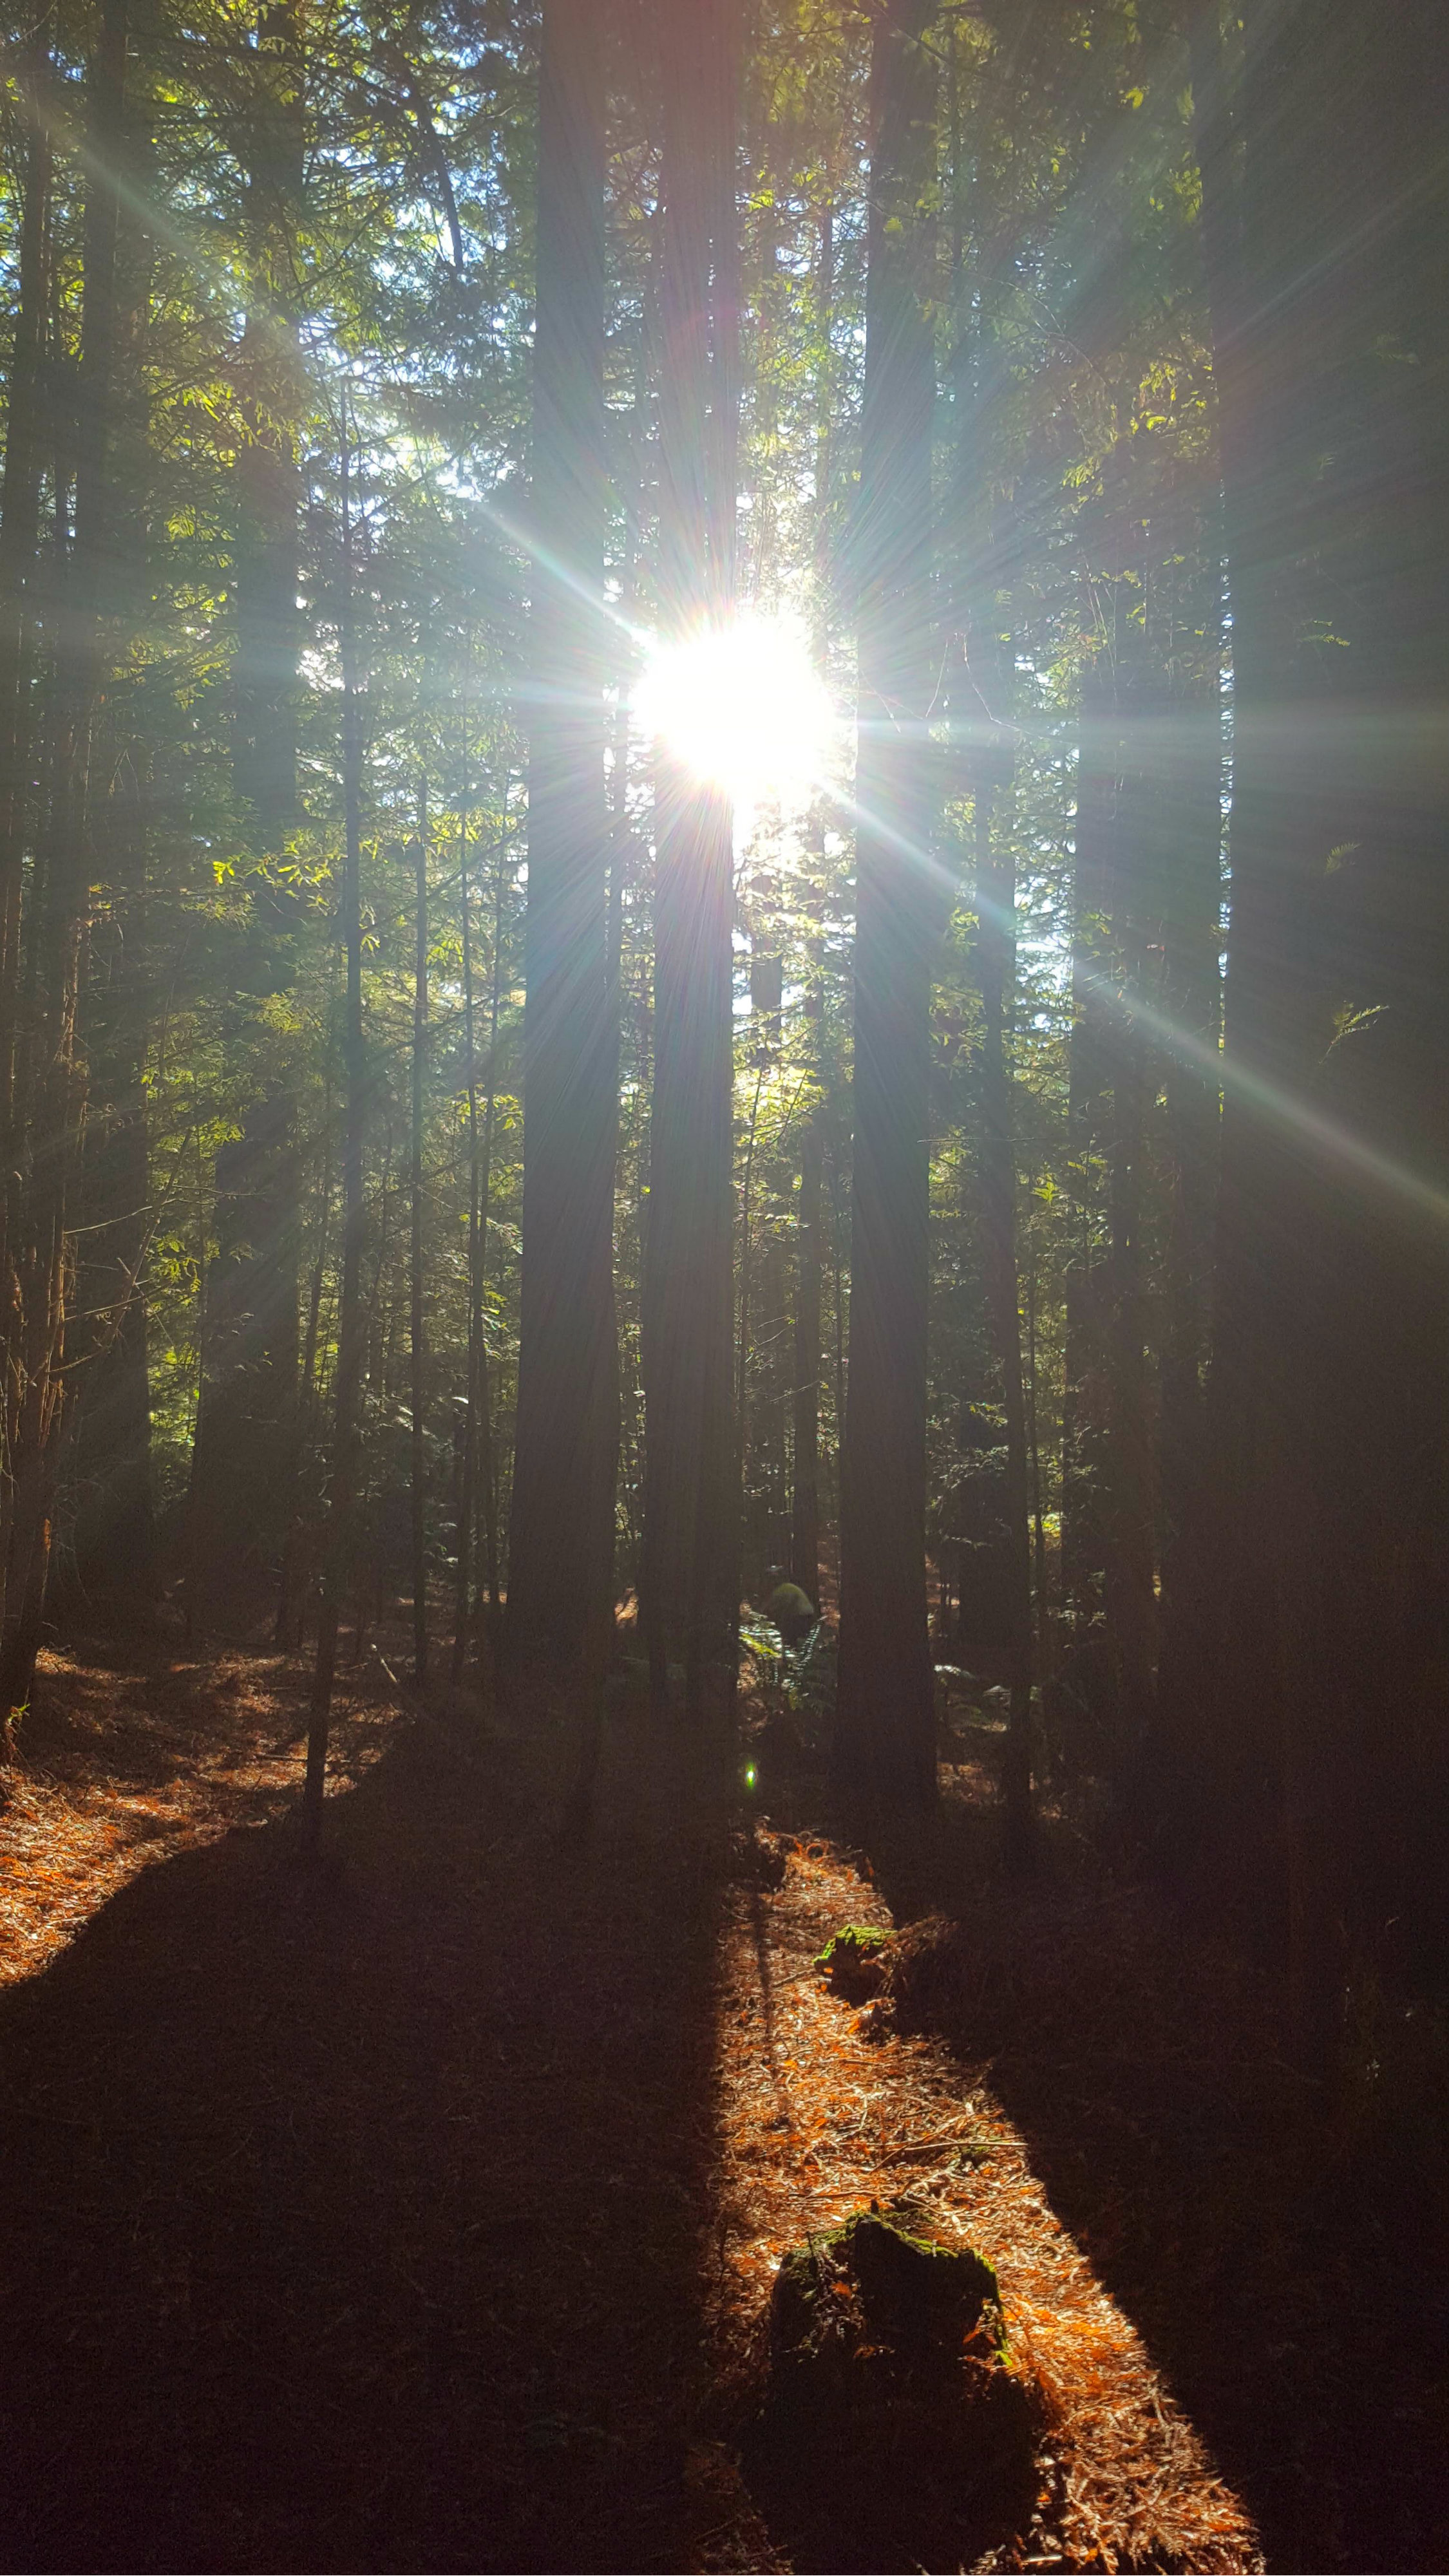 Tall Redwood trees with long shadows across leaf and bark strewn paths with sun shining through.